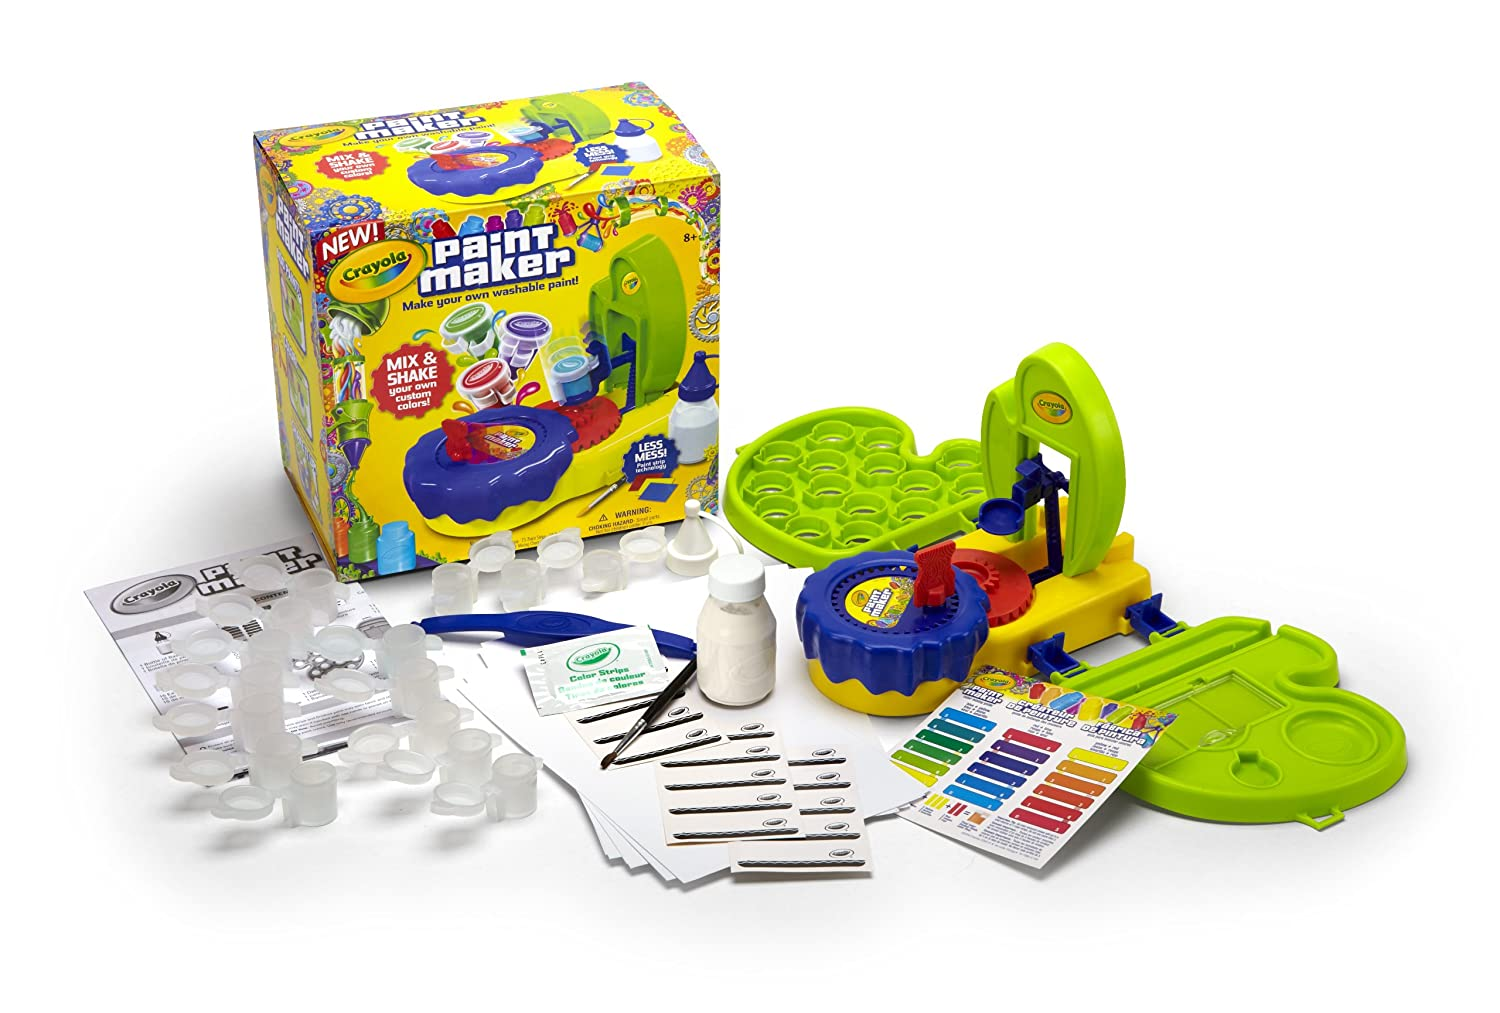 Crayola Paint Maker Review